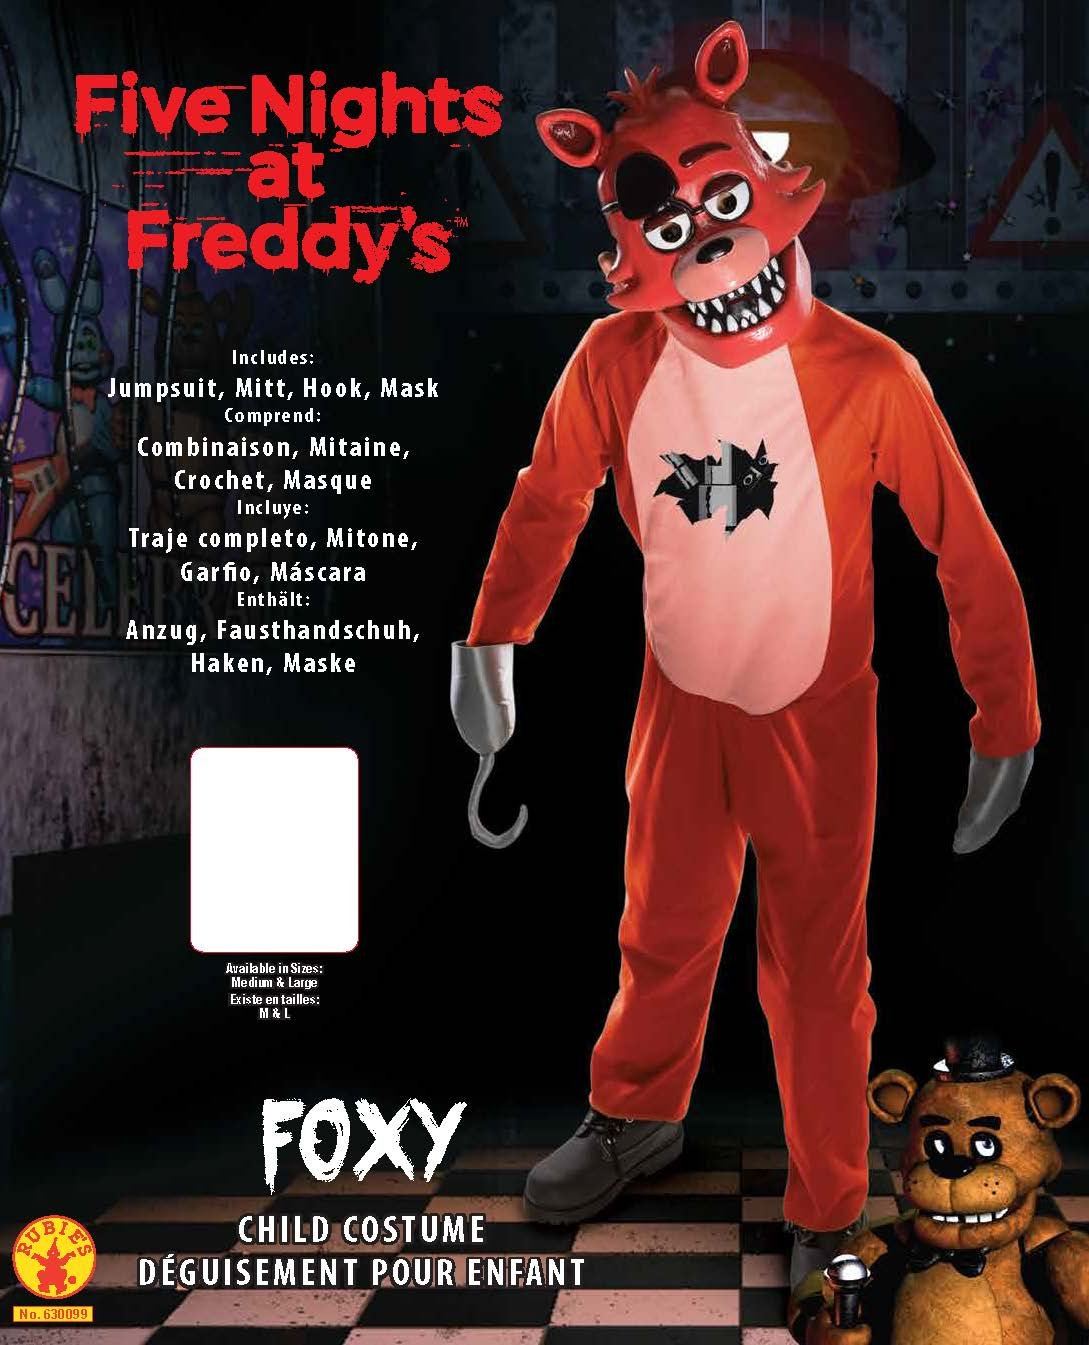 Amazon.com Rubieu0027s Five Nights Childu0027s Value-Priced at Freddyu0027s Foxy Costume Large Toys u0026 Games  sc 1 st  Amazon.com & Rubieu0027s Five Nights Childu0027s Value-Priced at Freddyu0027s Foxy Costume Large